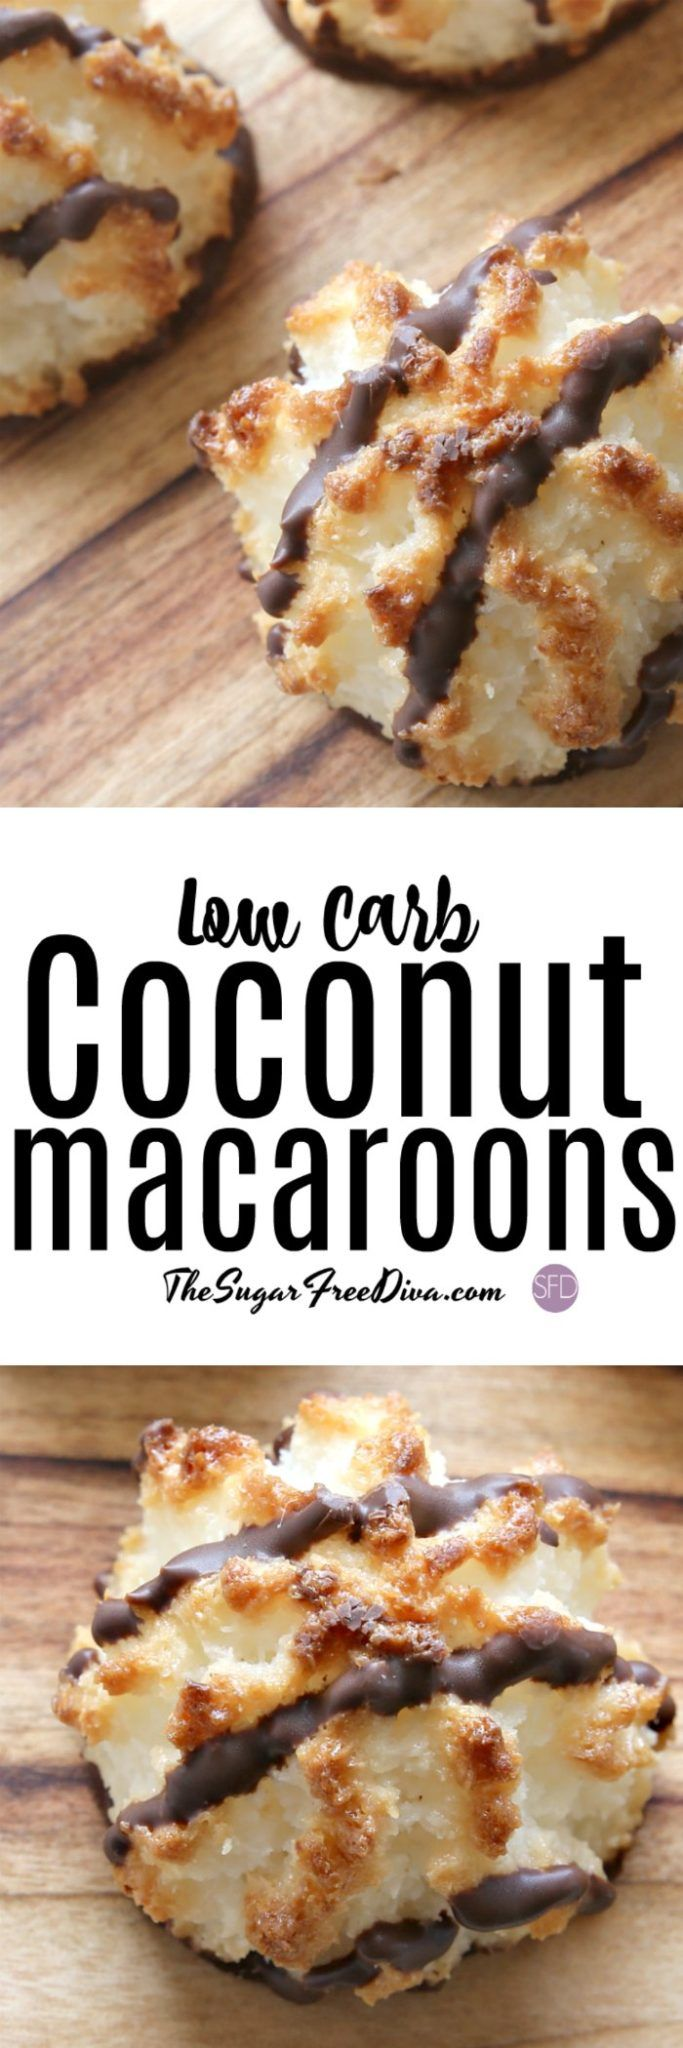 Coconut Macaroons that are also low carb